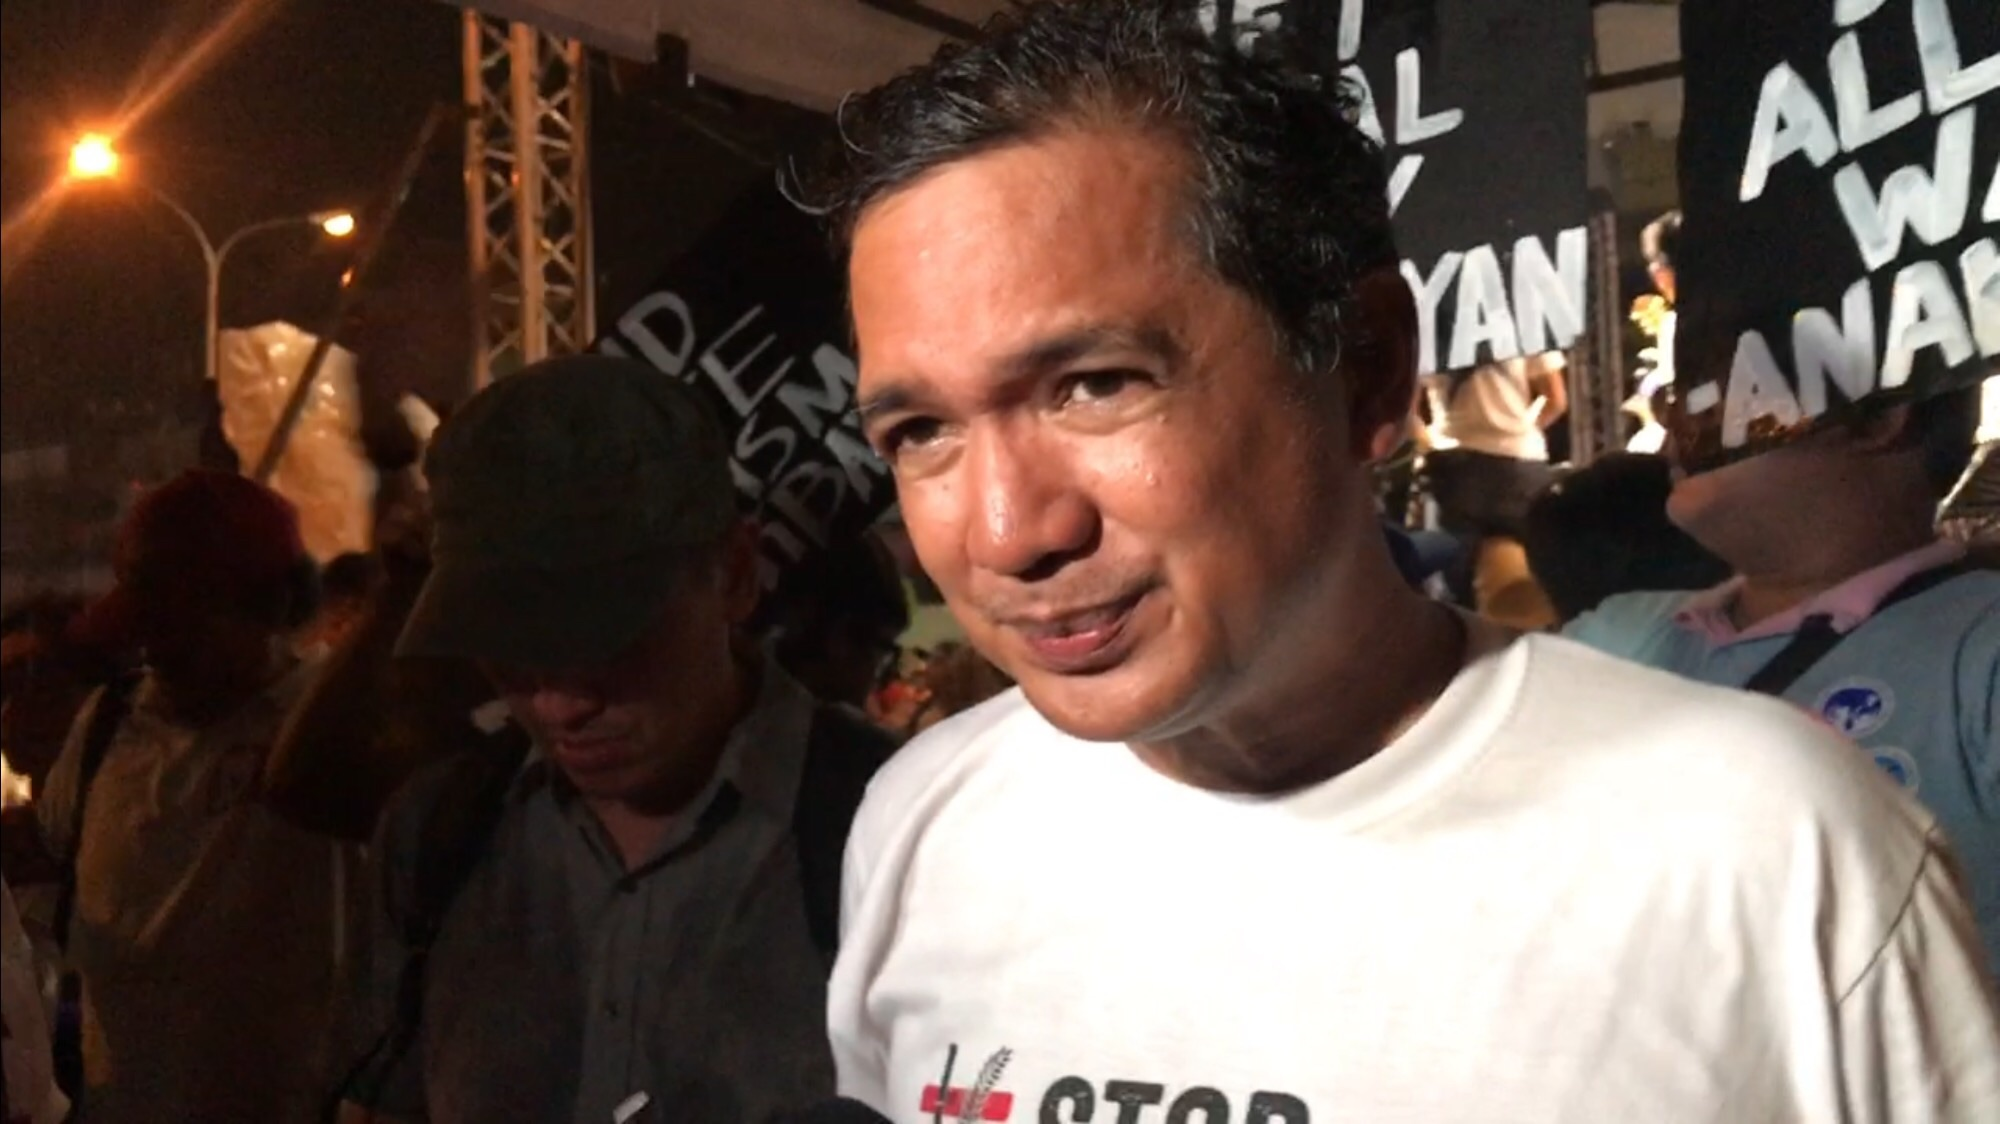 AIRING GRIEVANCES. After President Rodrigo Duterte faced SONA protesters, former Bayan Muna representative Teddy Casiu00f1o says it was a good gesture but not enough. Photo by Rambo Talabong/Rappler